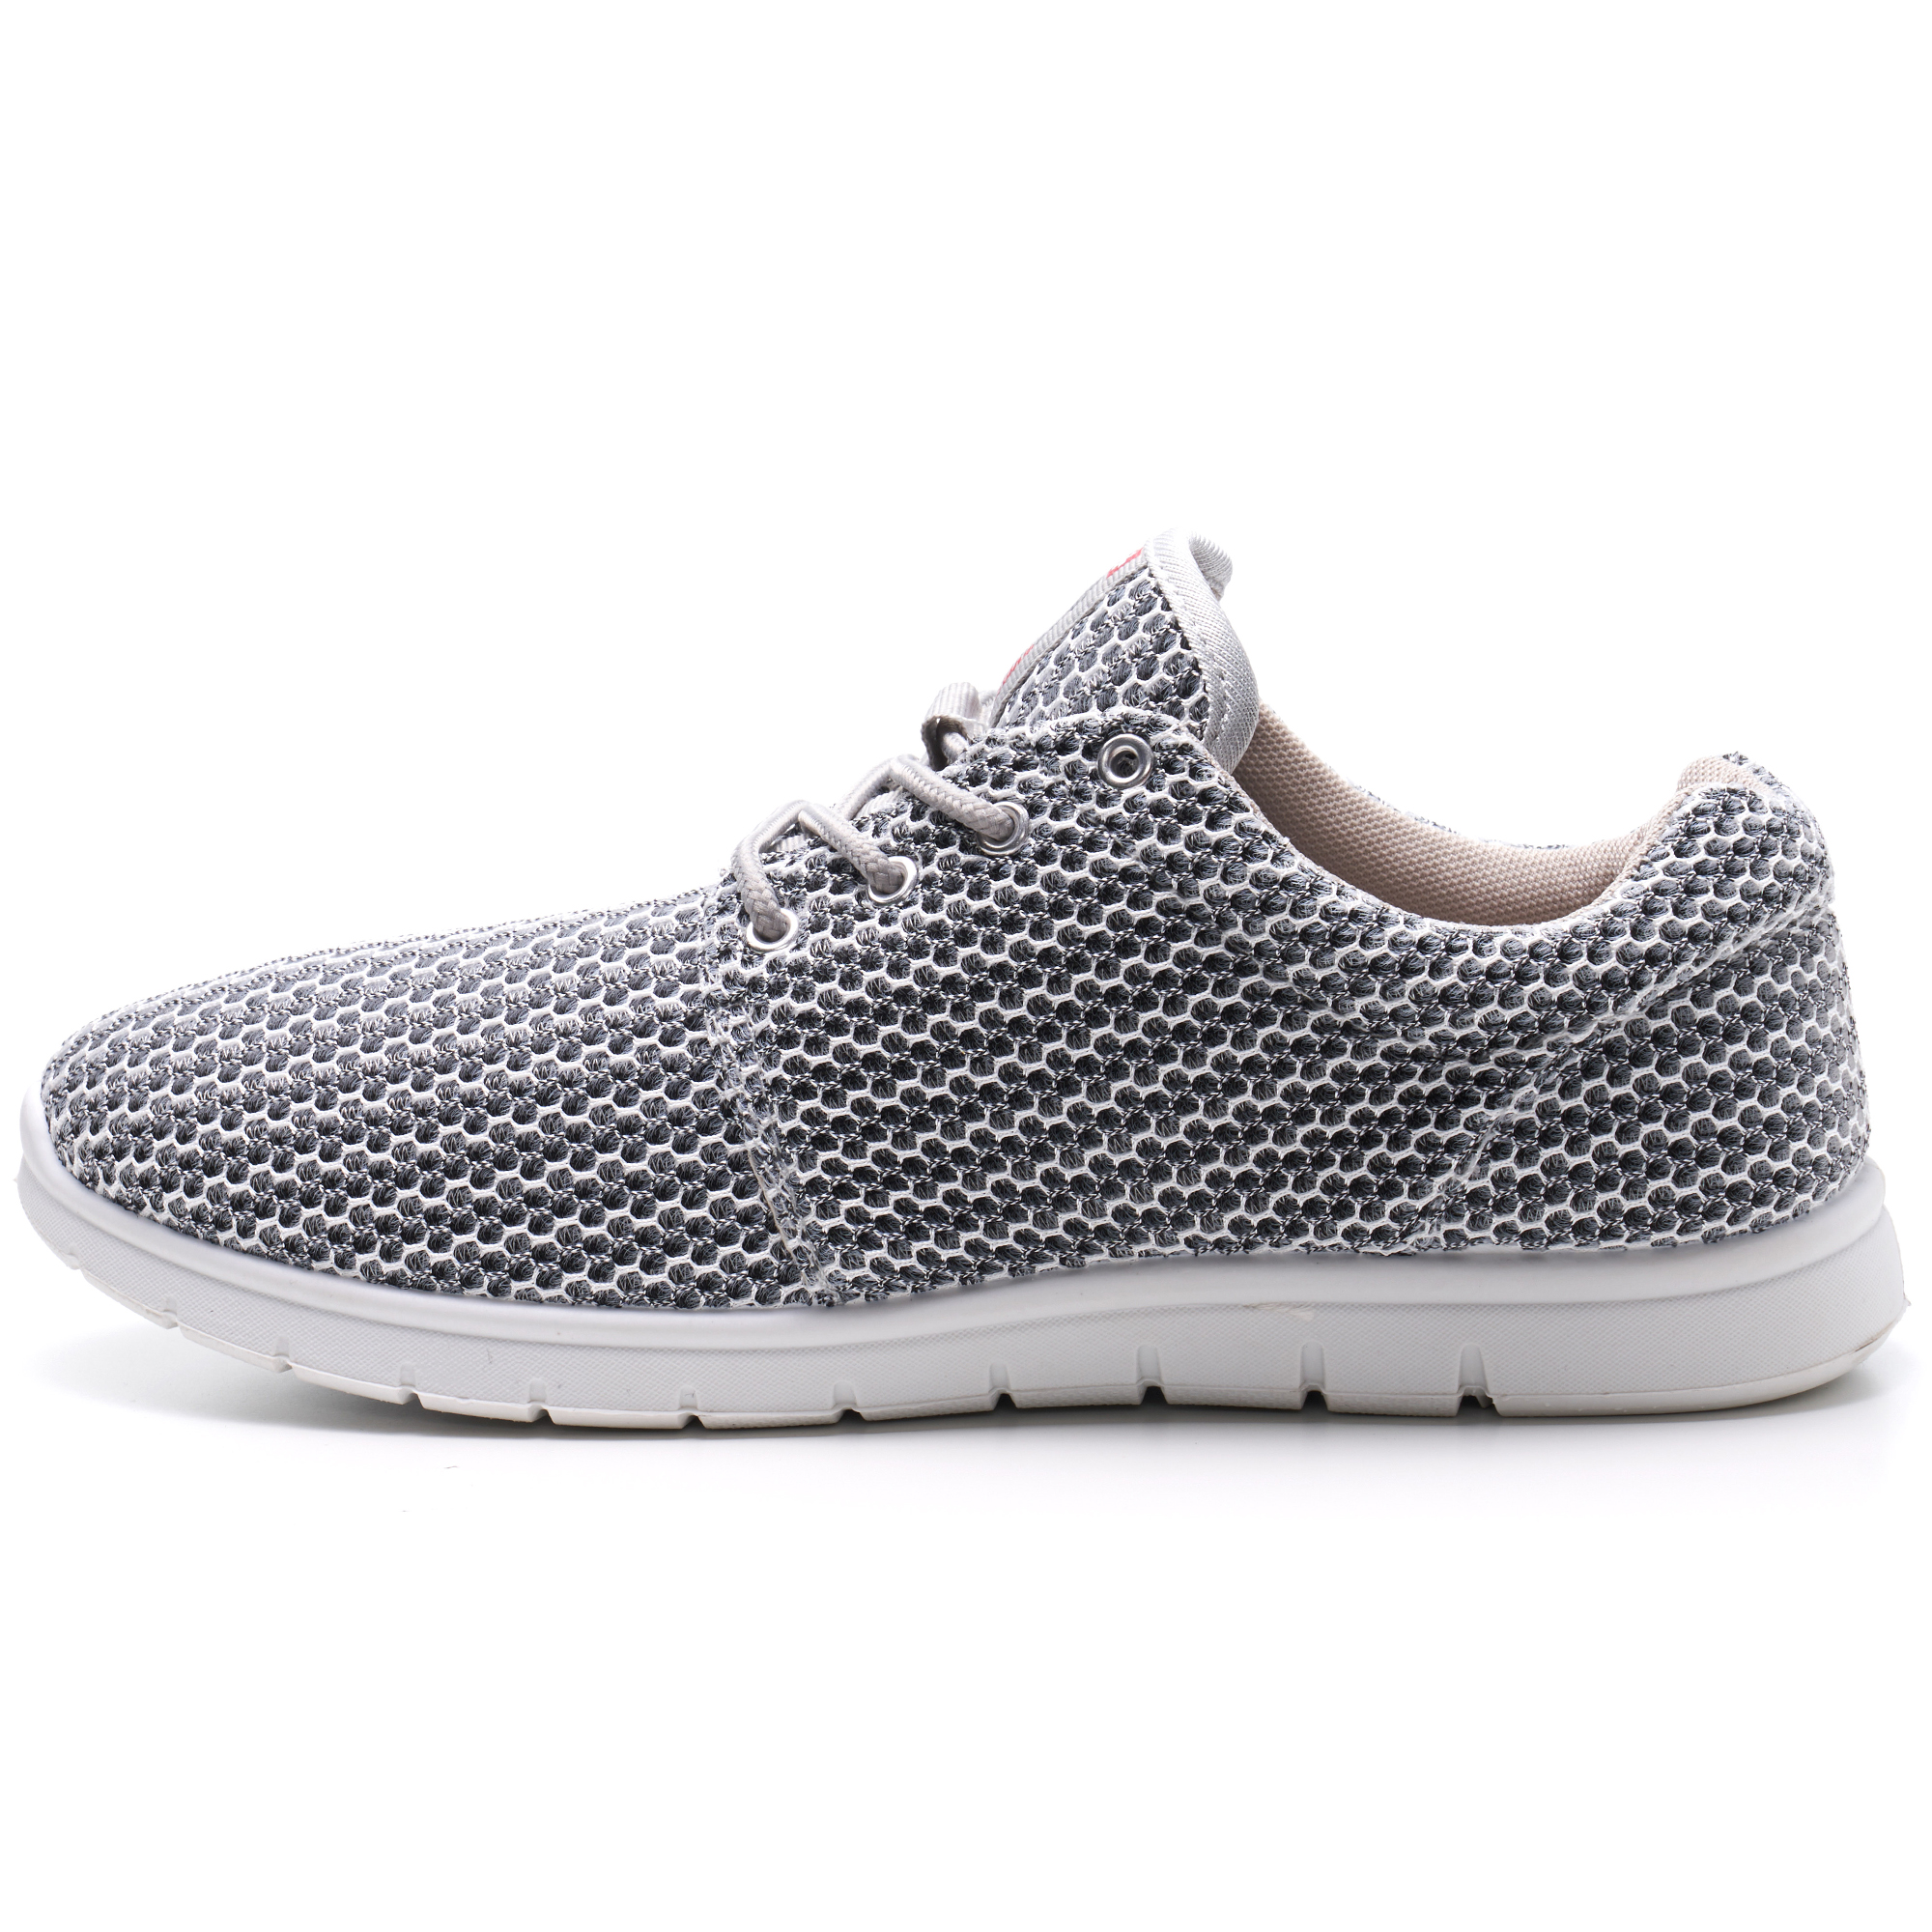 0bf332aefd5174 Alpine Swiss Kilian Mesh Sneakers Casual Shoes Mens   Womens ...